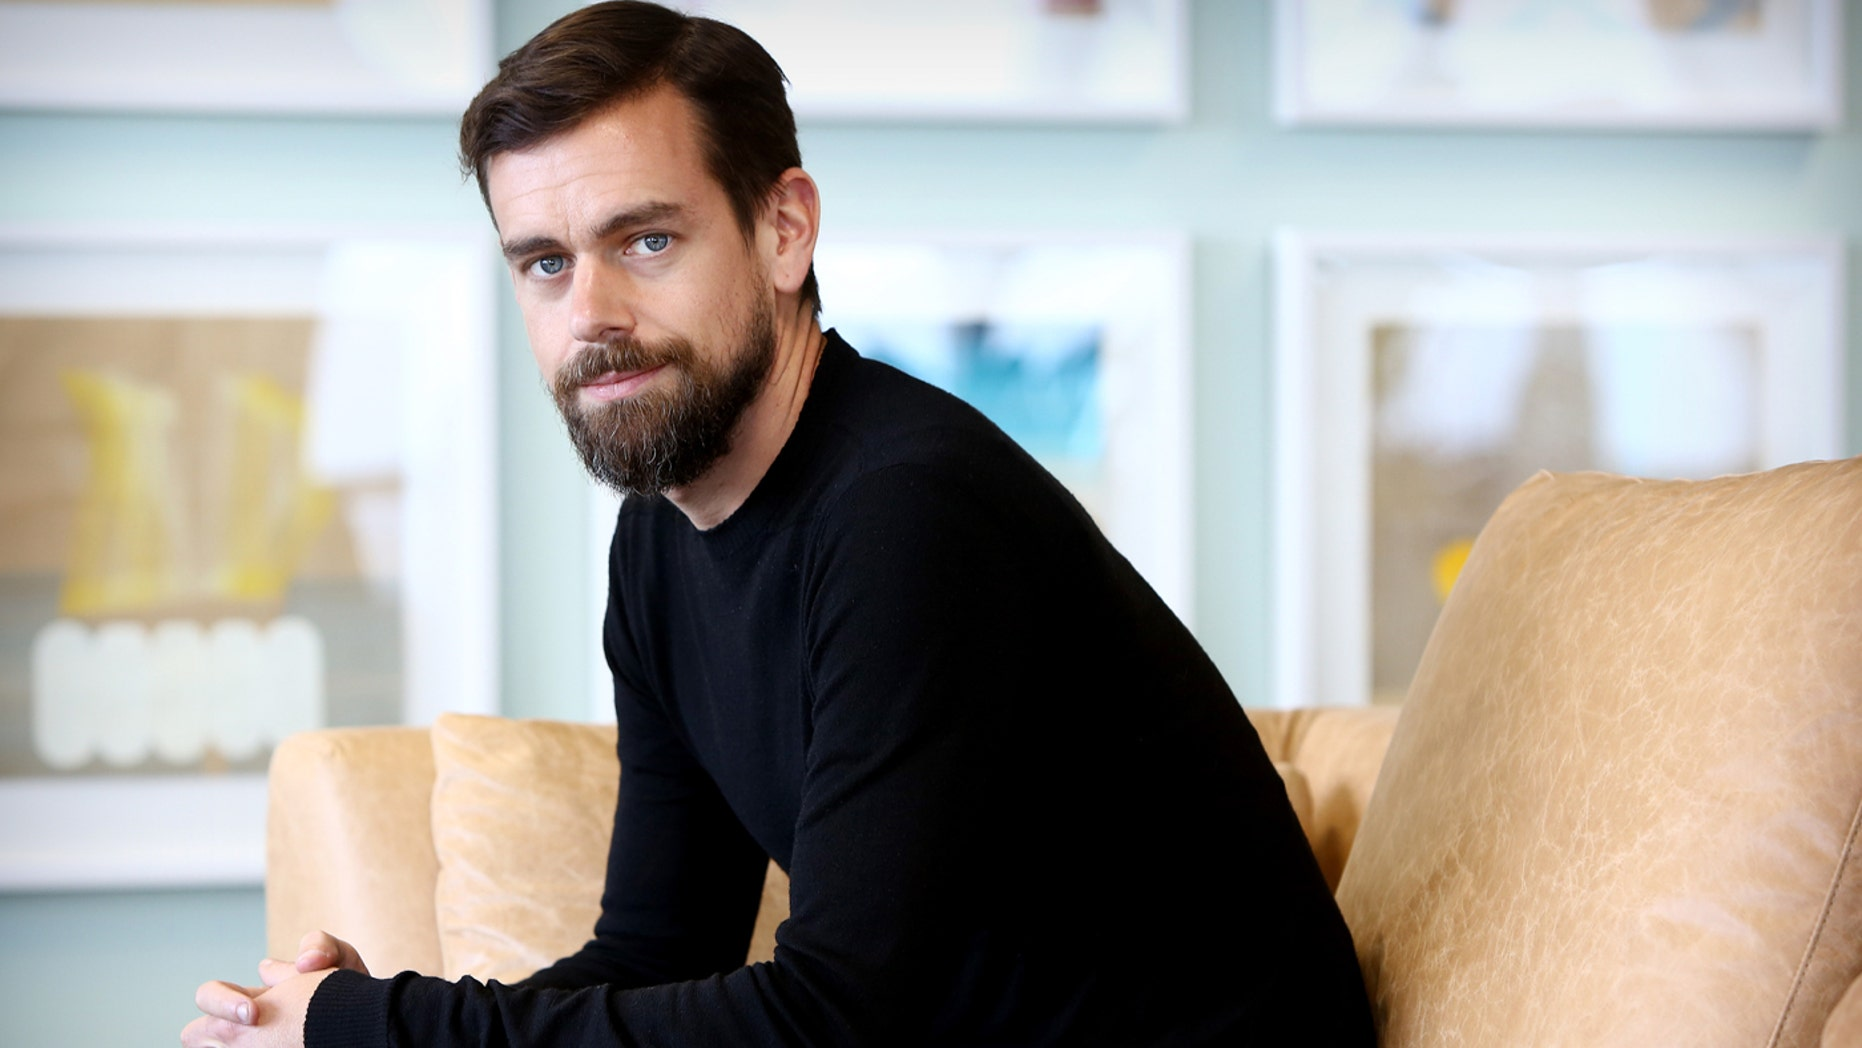 Twitter CEO Jack Dorsey said the company is open to a range of changes in the platform's structure.